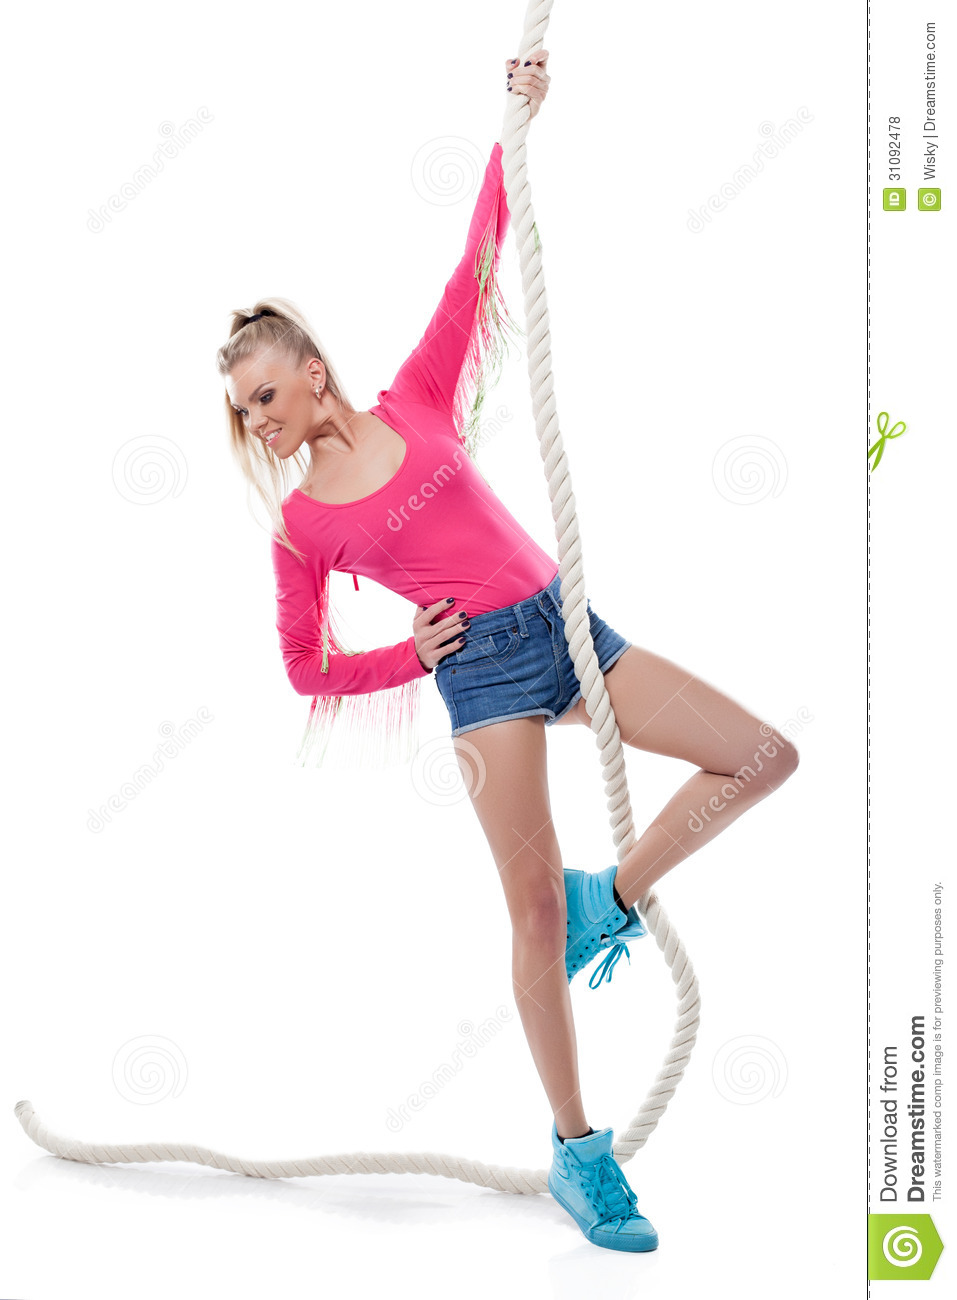 Women Tied Up With Rope Photos and Premium High Res